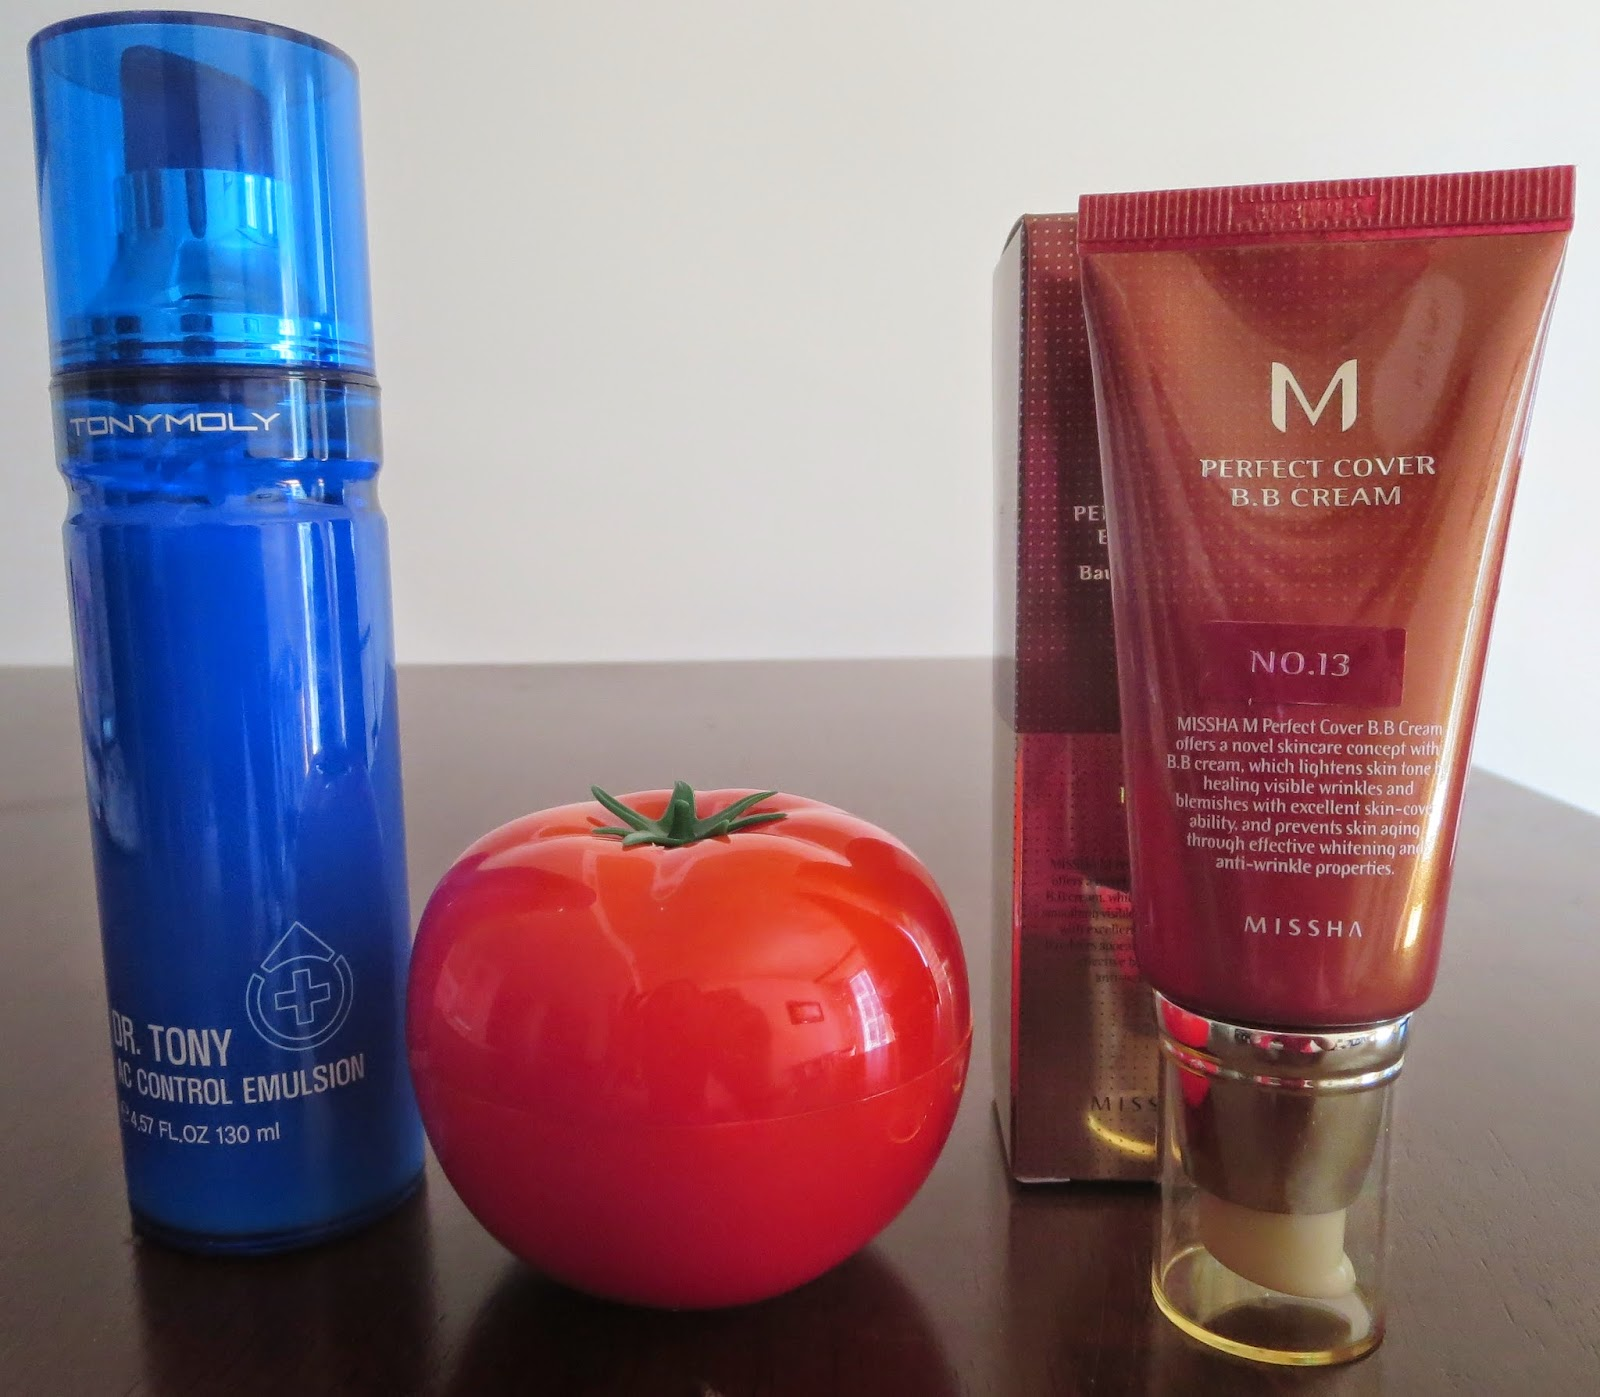 a picture of TONYMOLY moisturizer, TONYMOLY Tomatox mask, Missha Perfect Cover BB cream